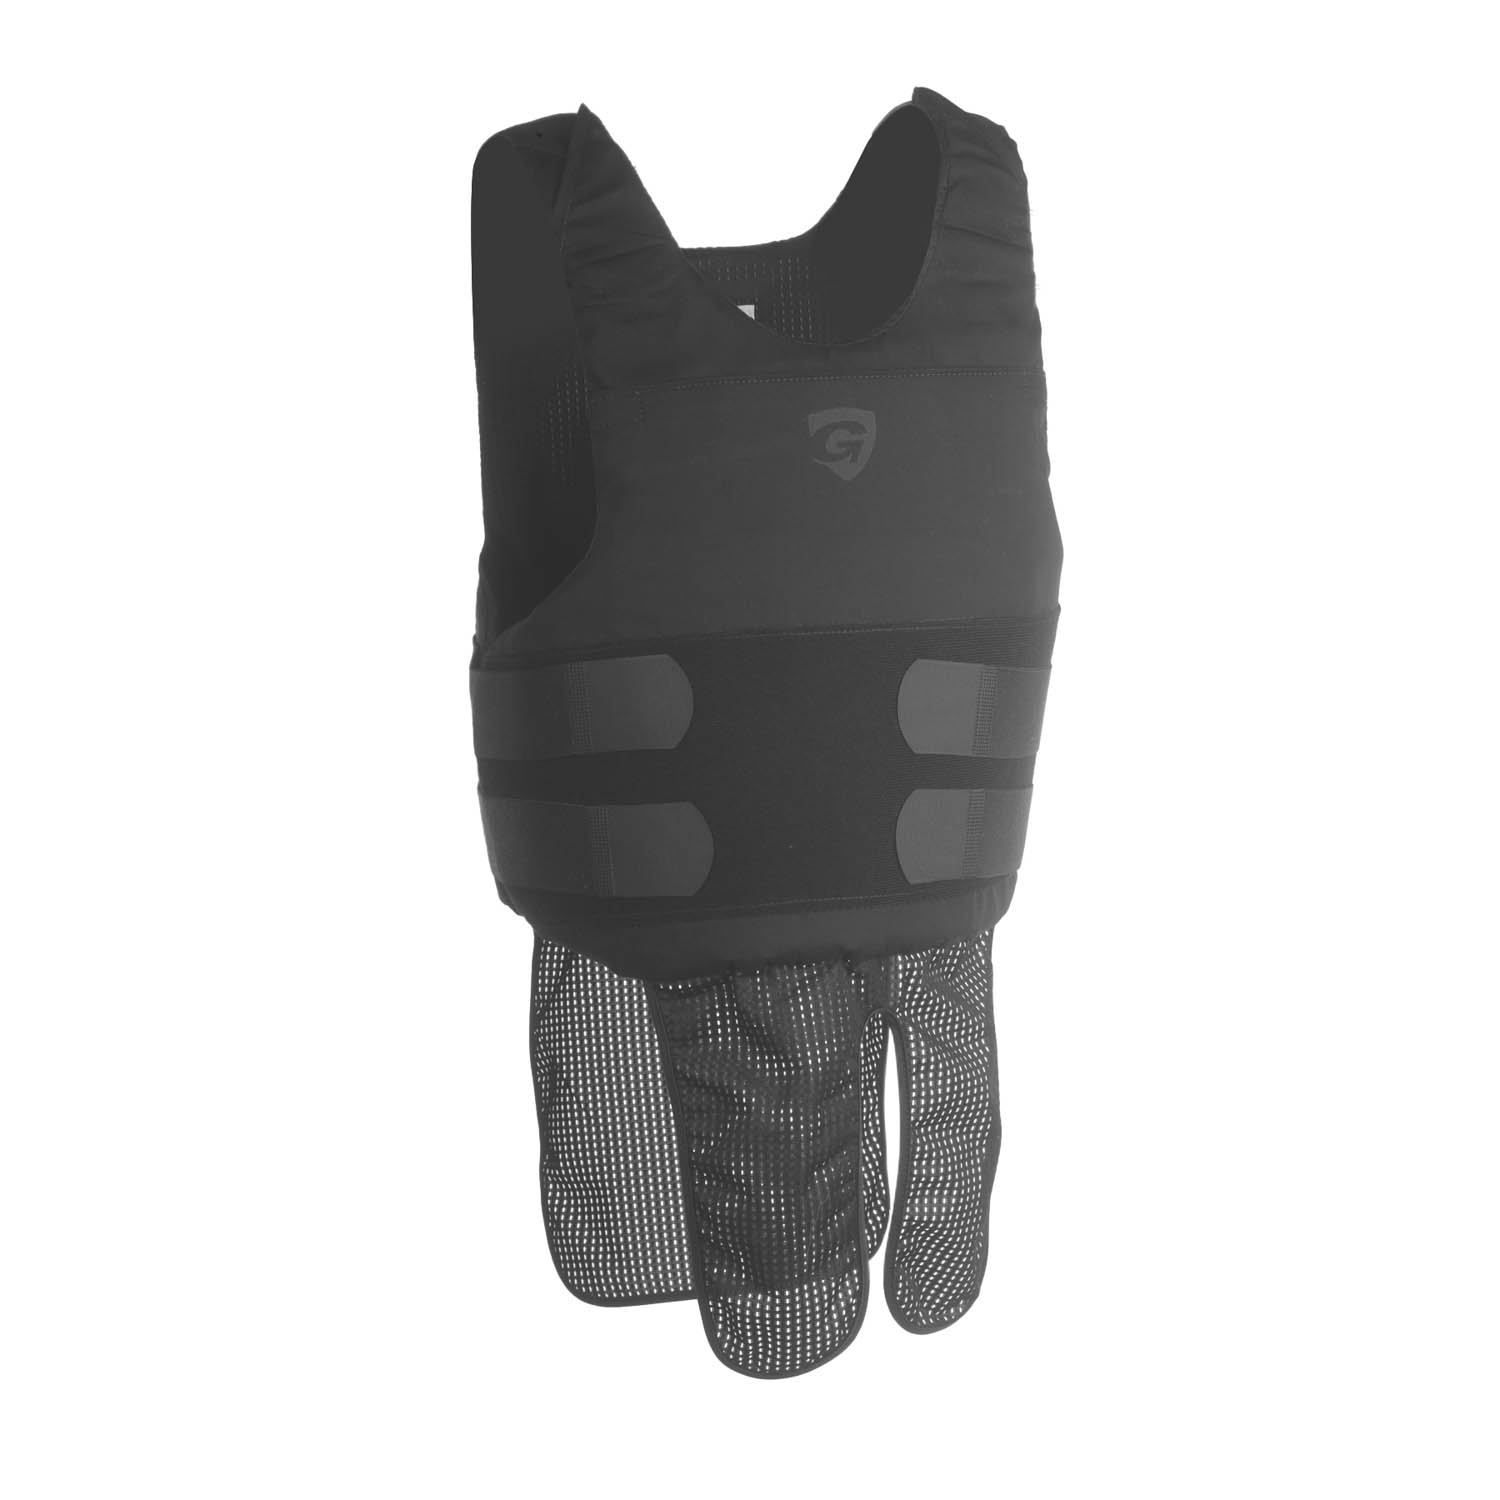 Galls SE Series IIIA Body Armor